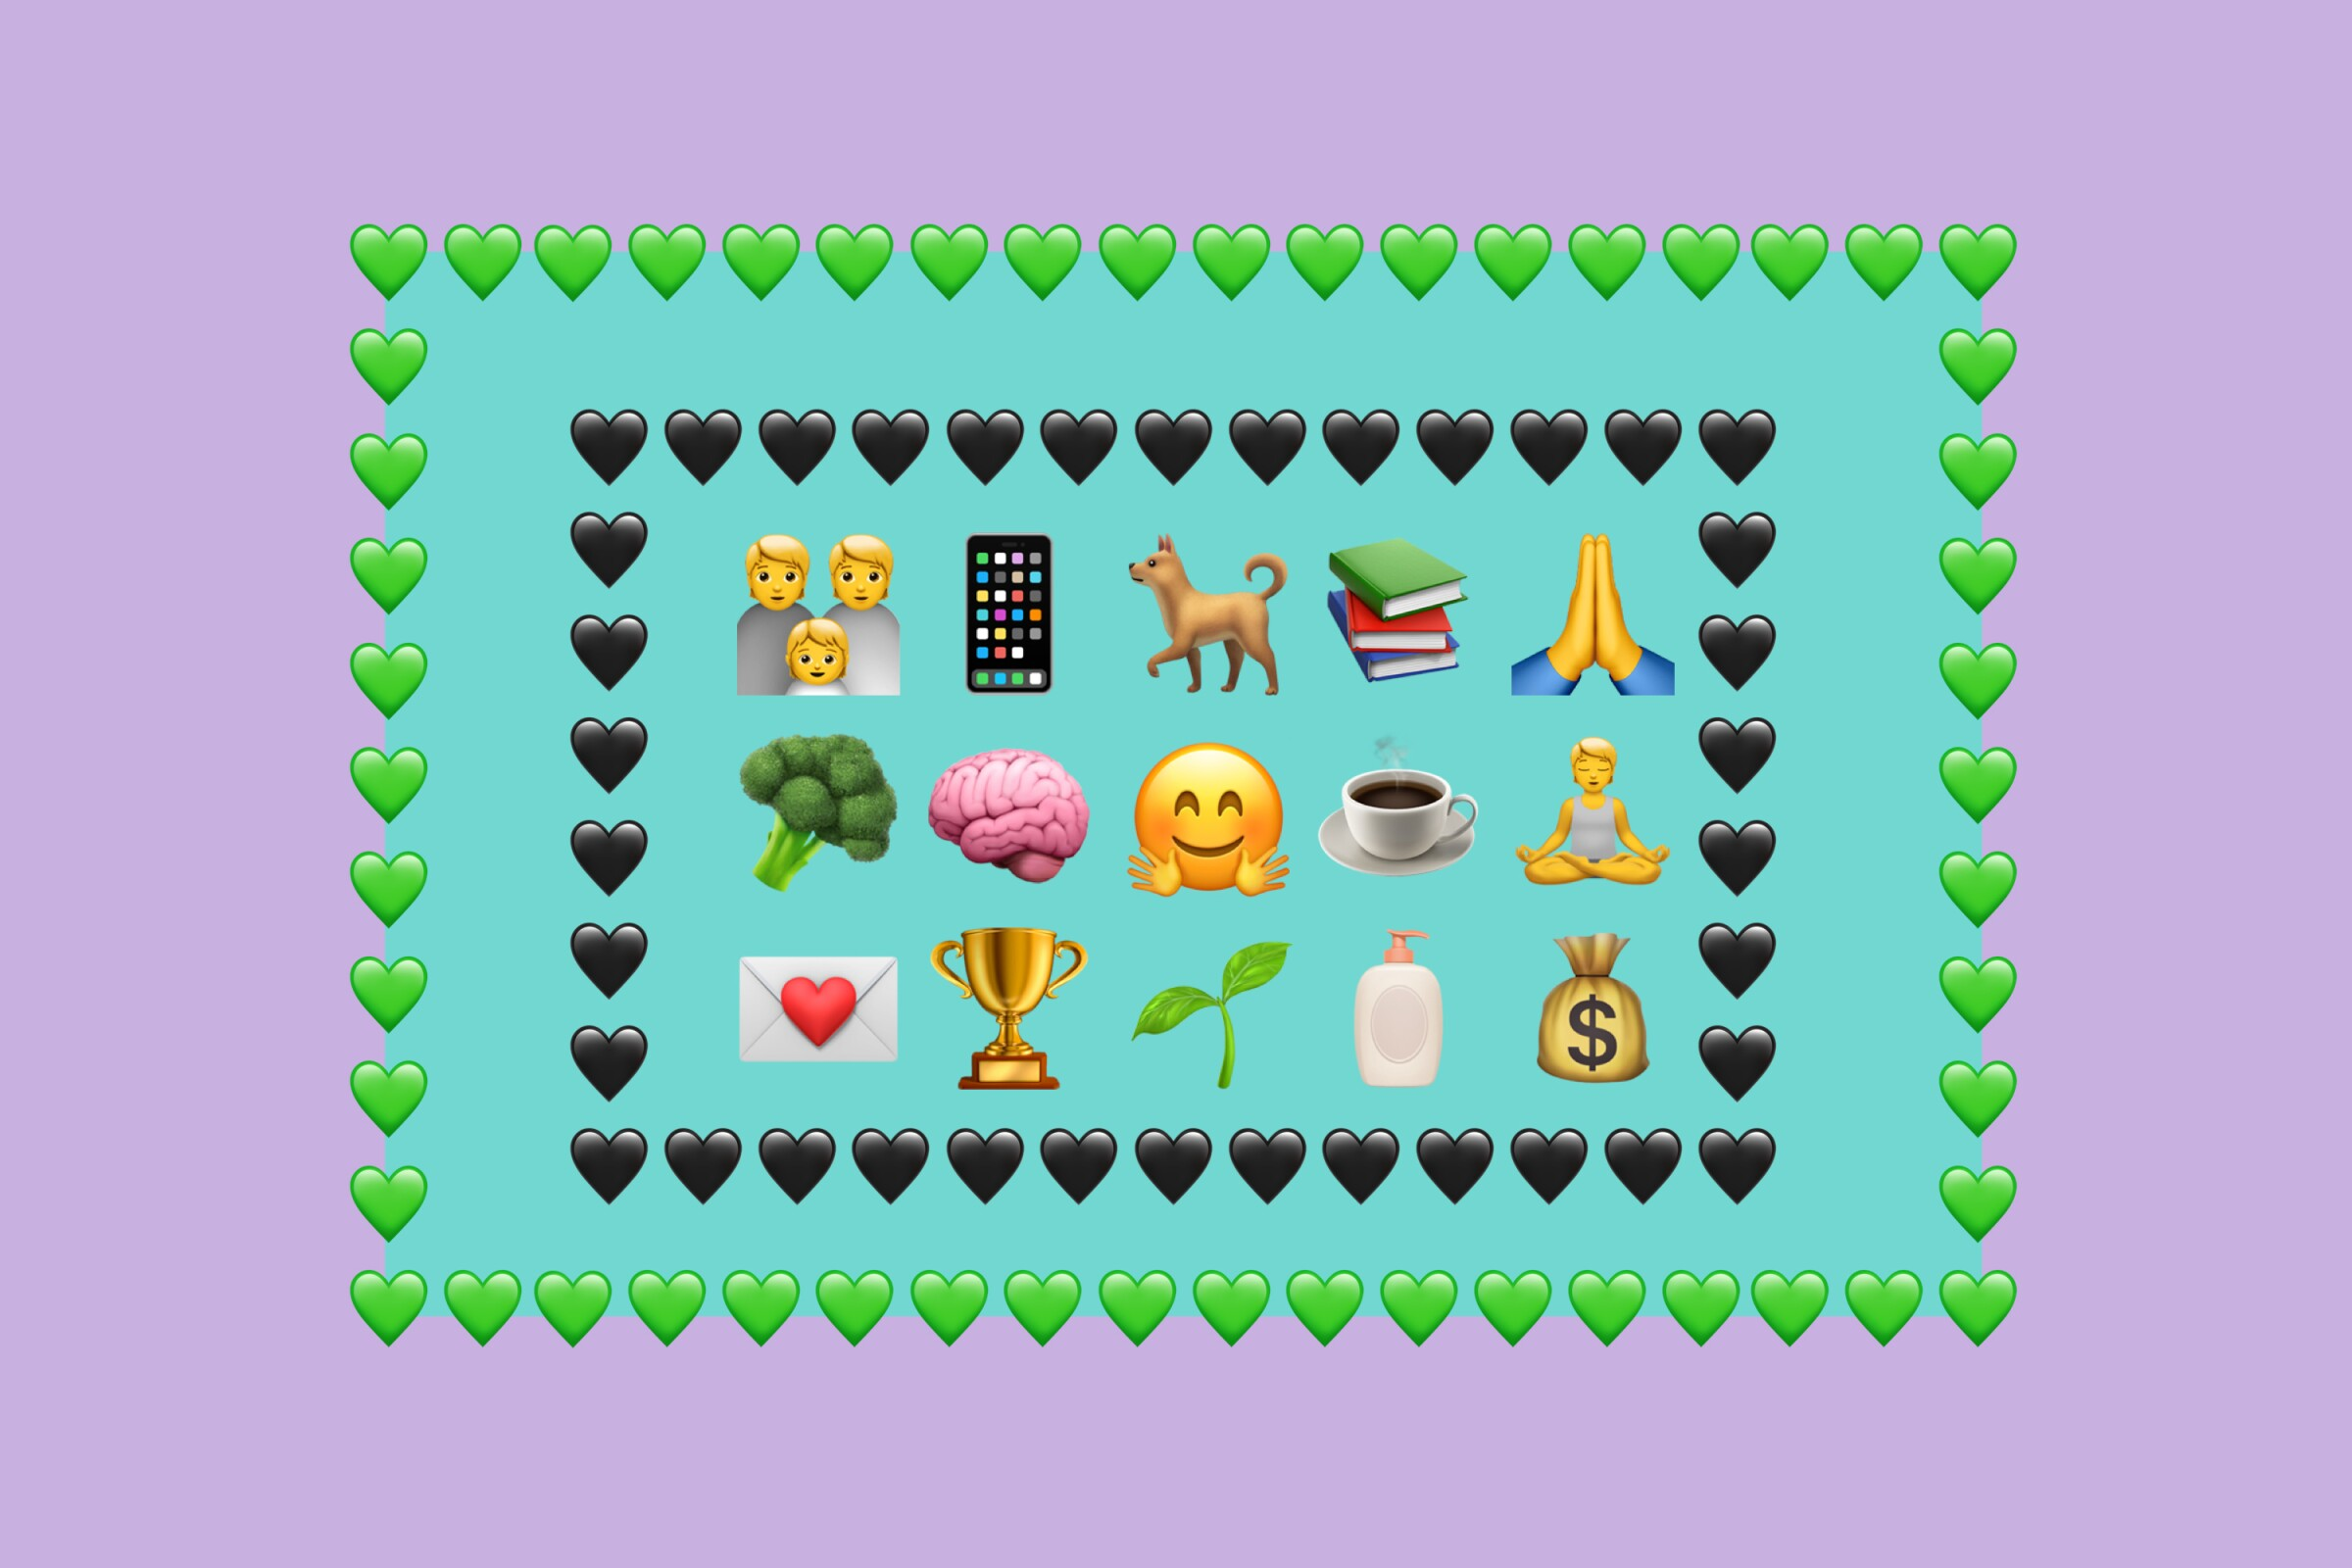 Heart emojis surrounding broccoli, brain, coffee, trophy and other emoji.